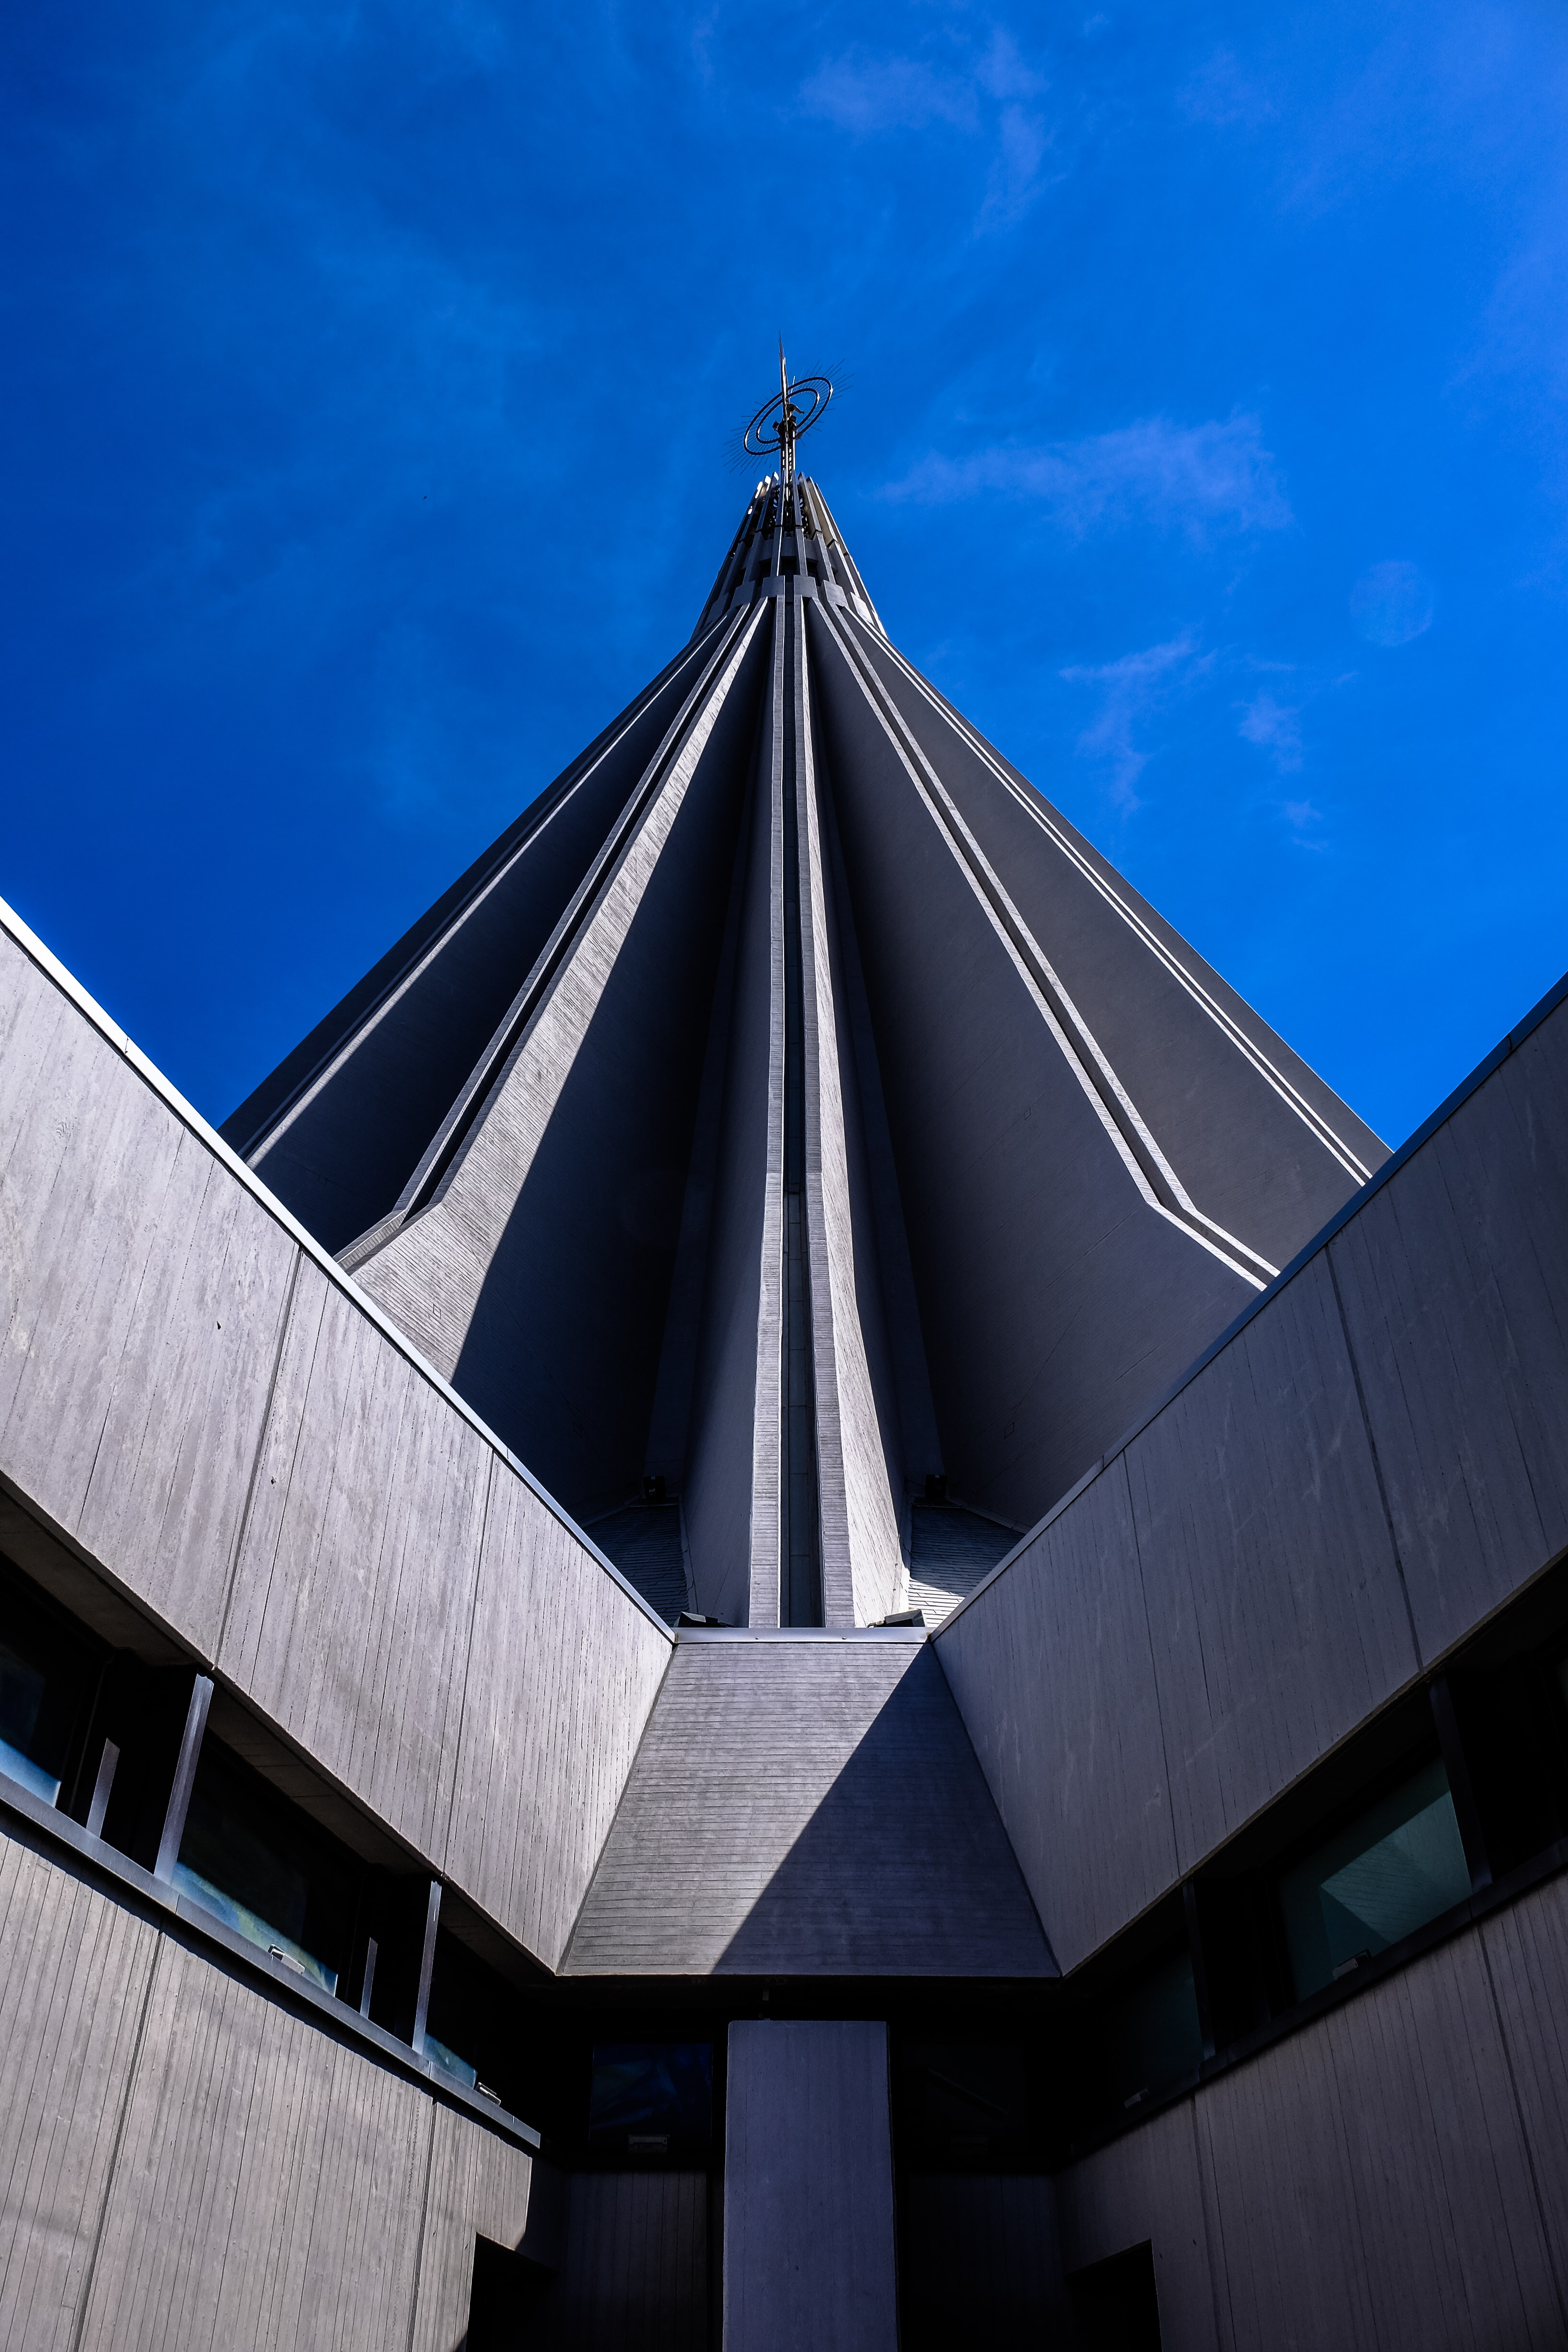 gray concrete building with circle finial under clear sky